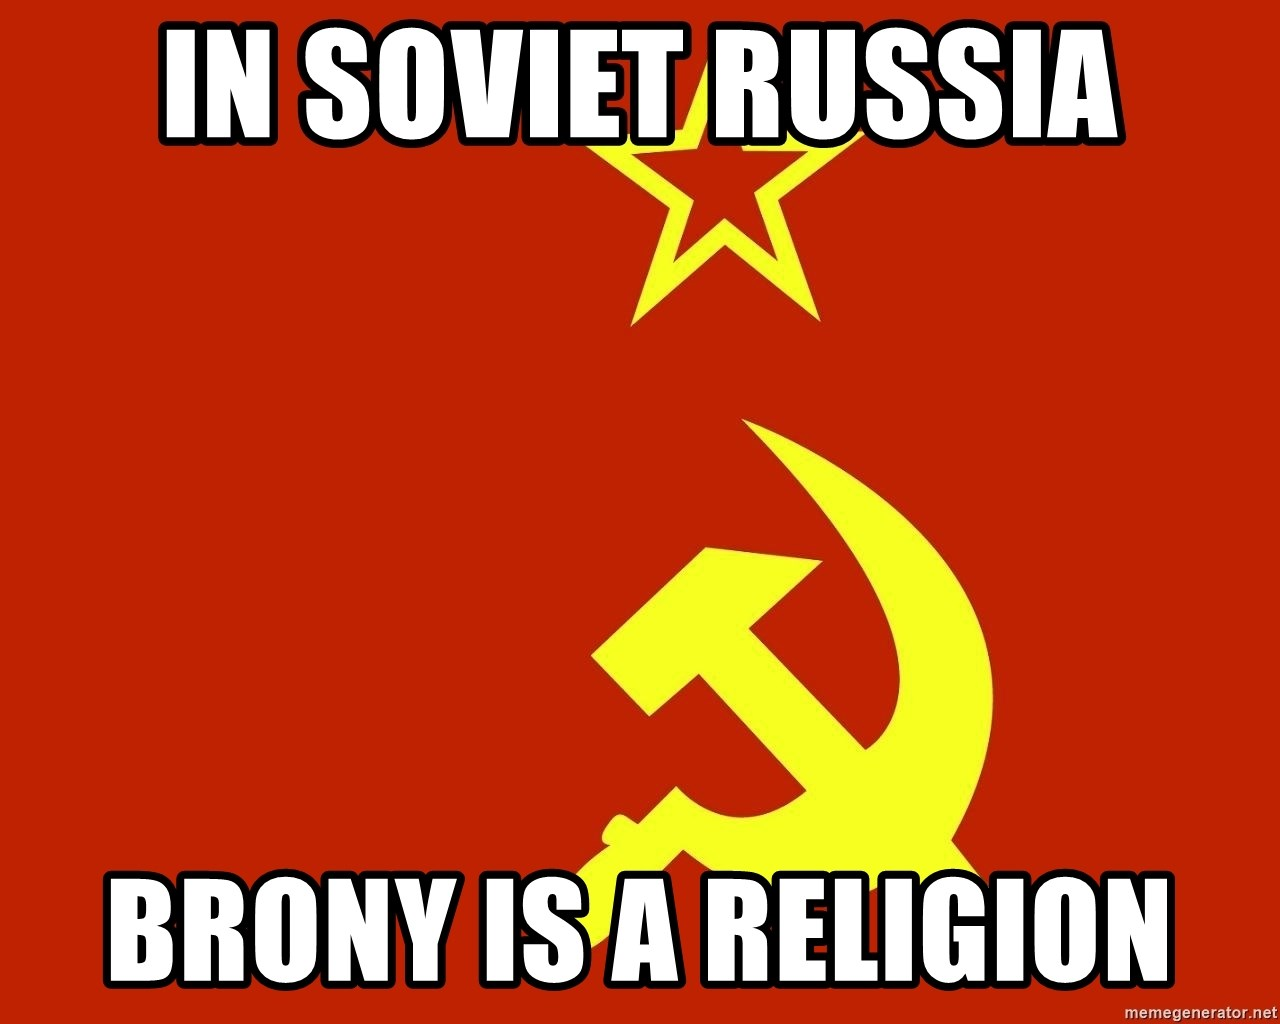 In Soviet Russia - In soviet russia brony is a religion